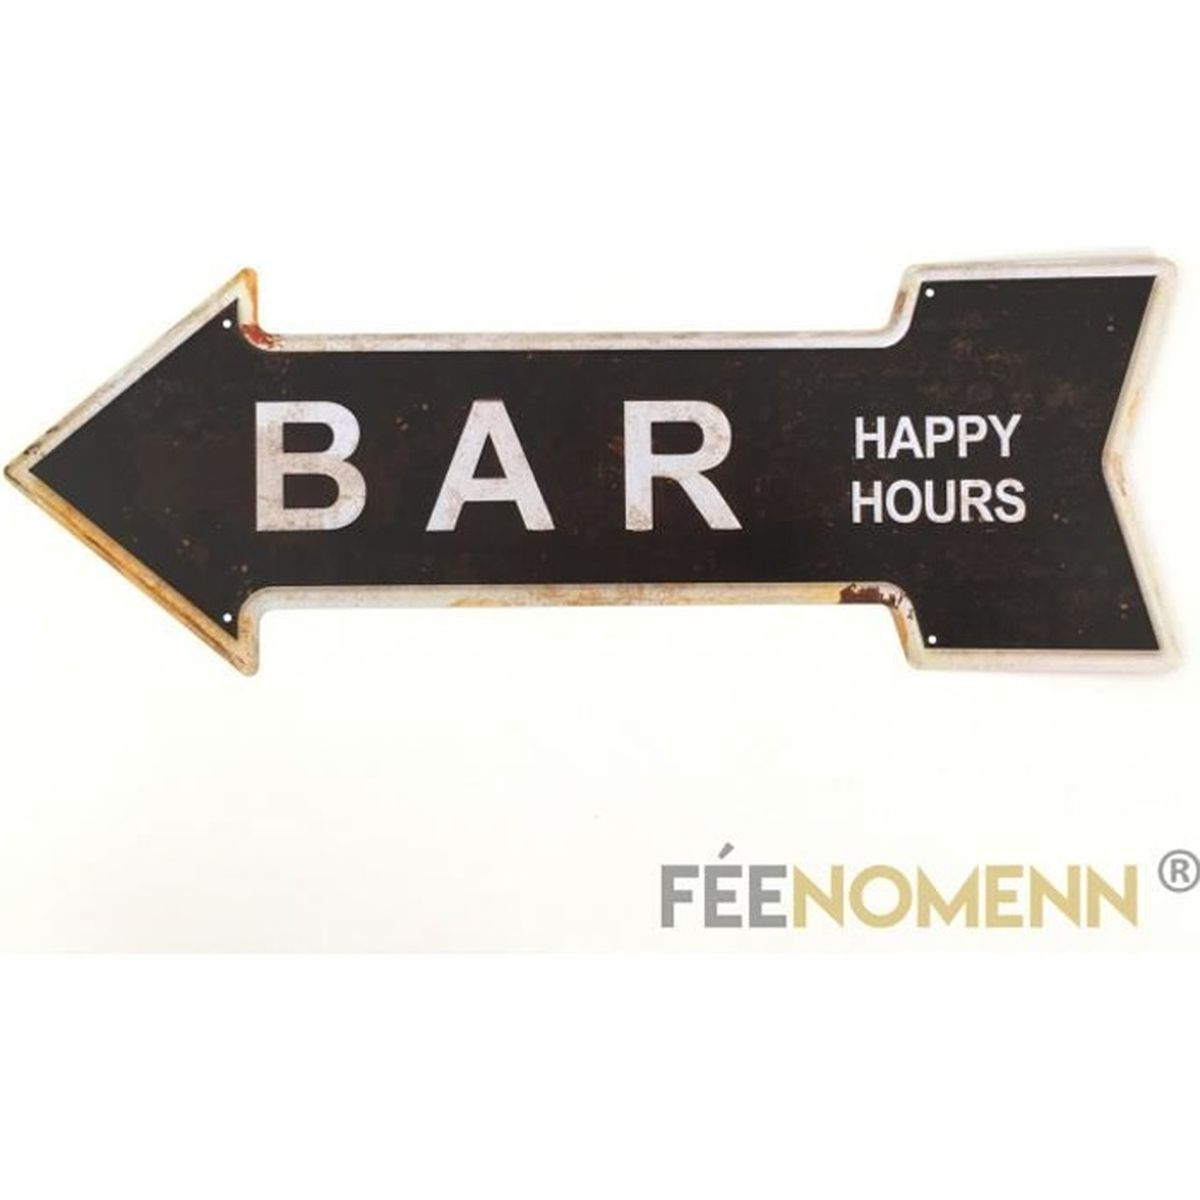 plaque m tal d co vintage bar happy hours 16x45cm achat vente objet d coration murale. Black Bedroom Furniture Sets. Home Design Ideas